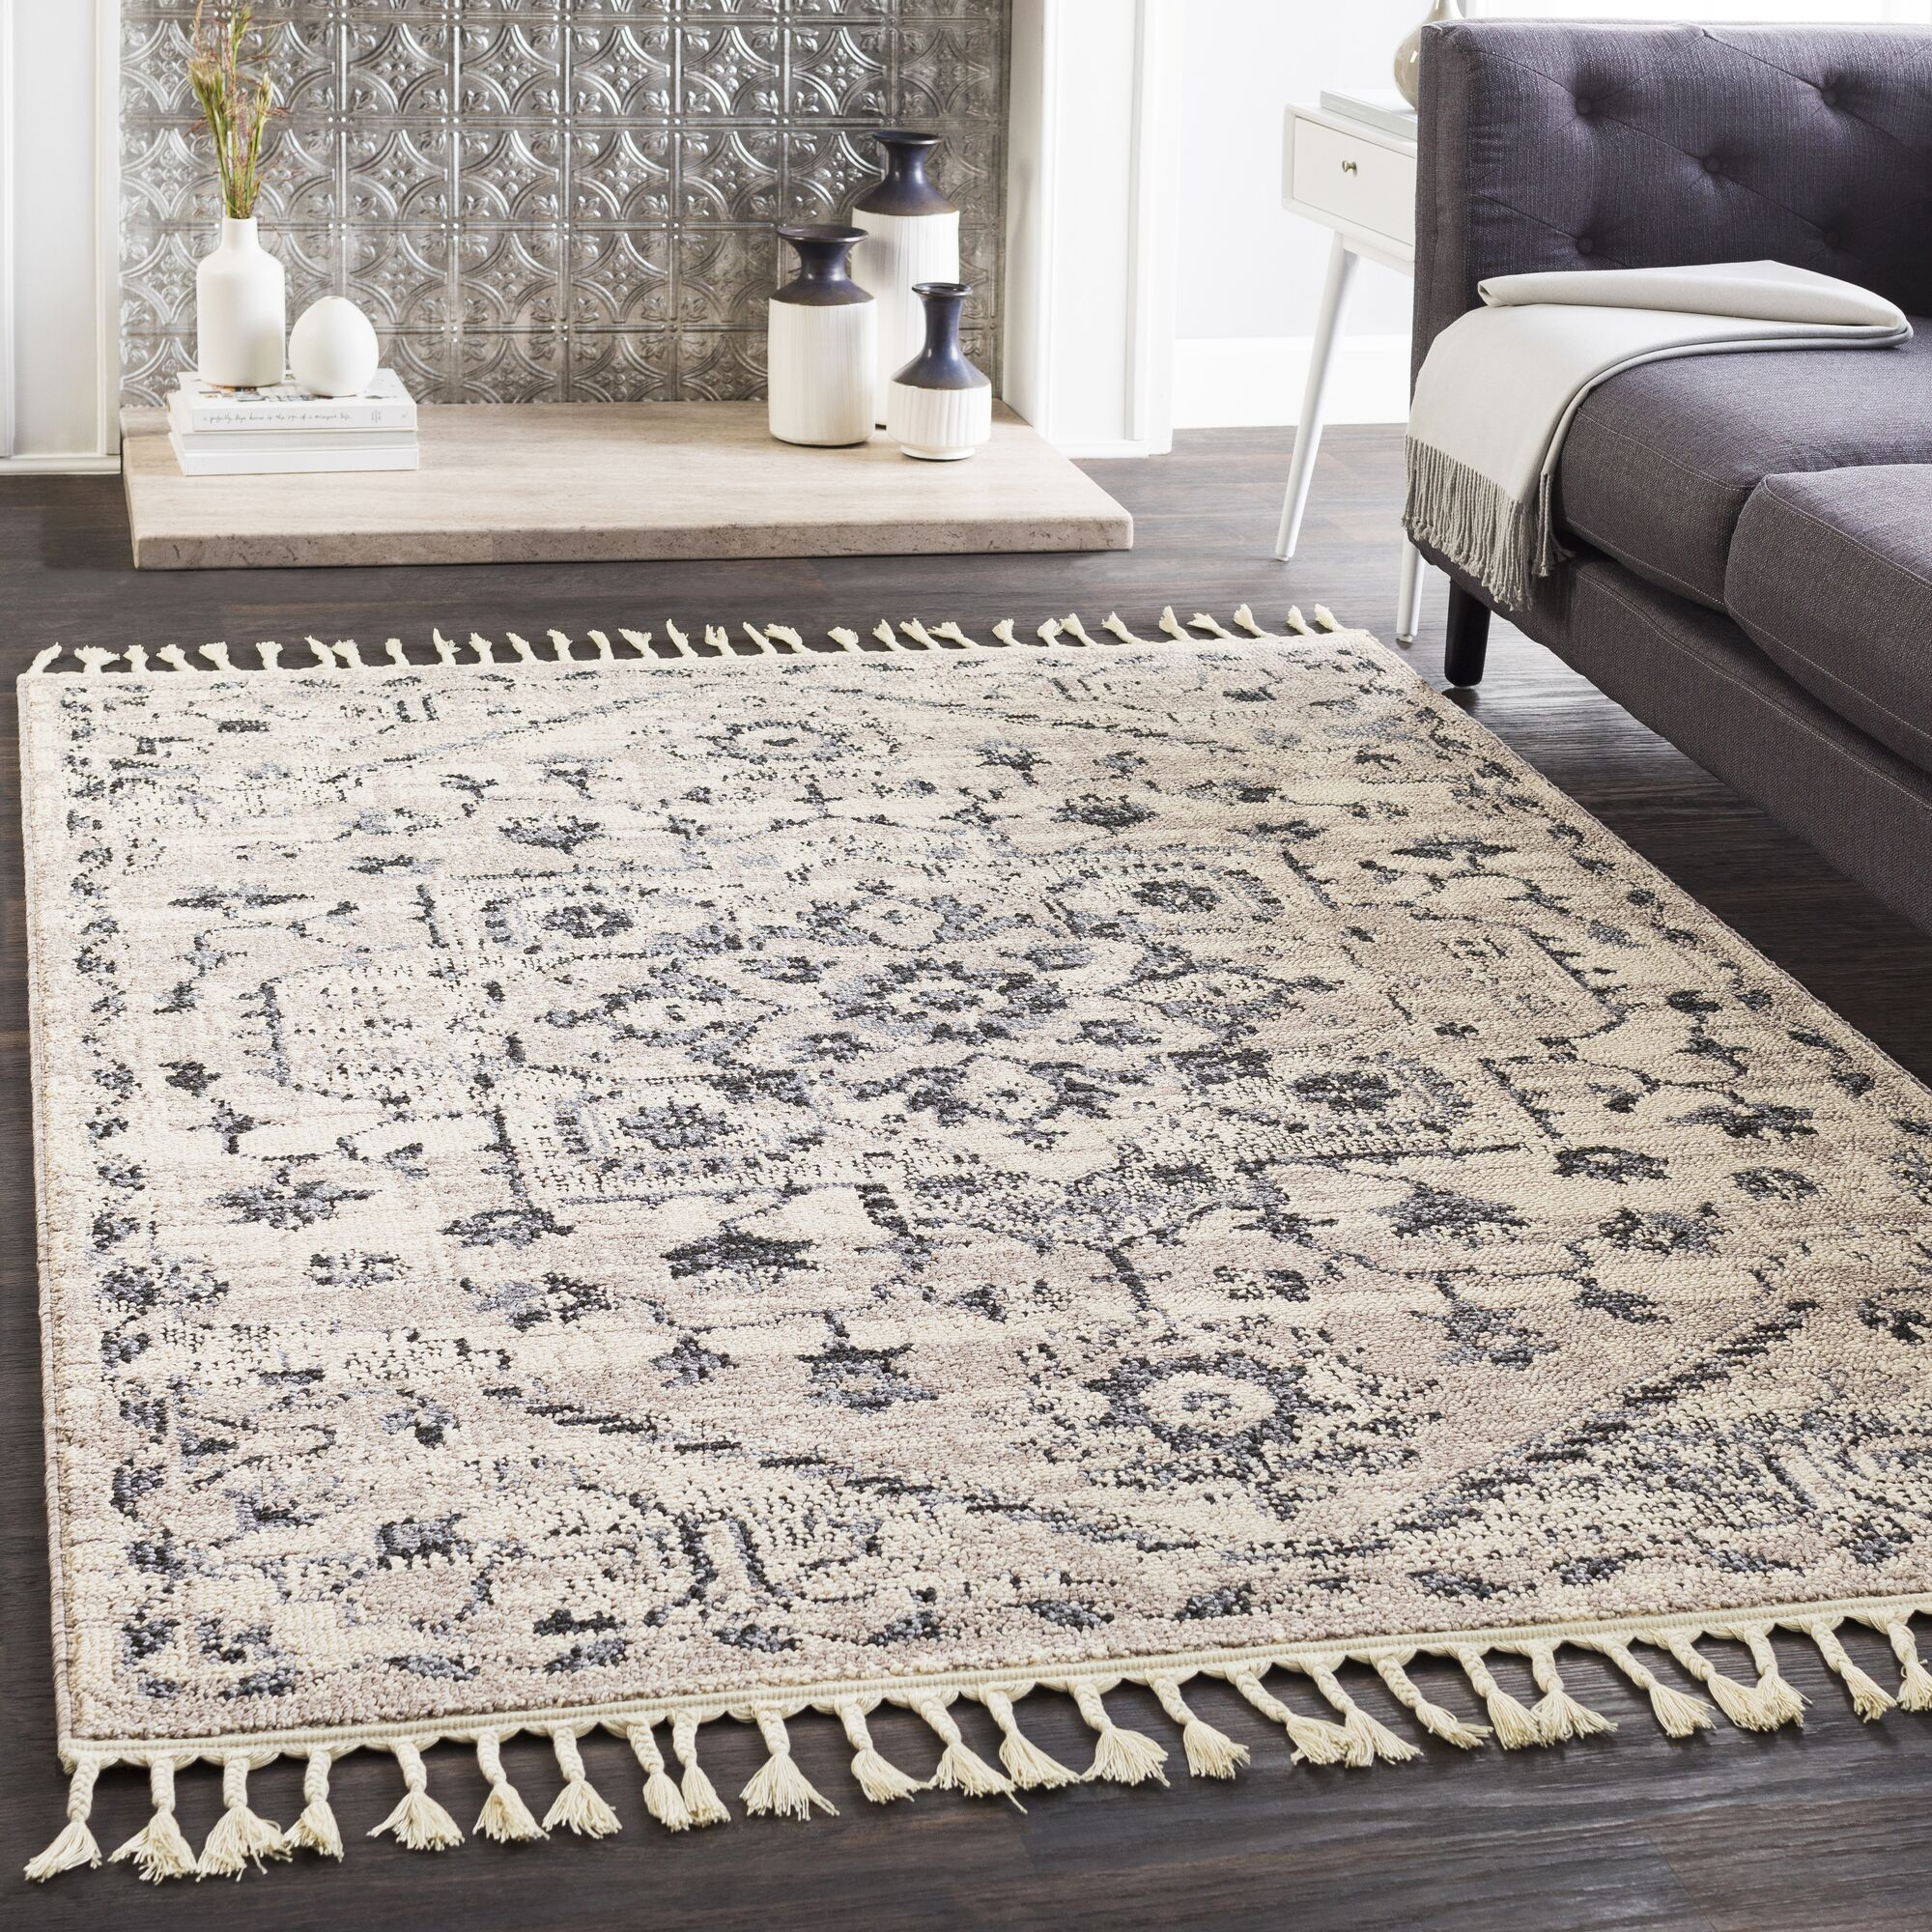 Kenley Distressed Taupe/Charcoal Area Rug Rug Size: Runner 2'7